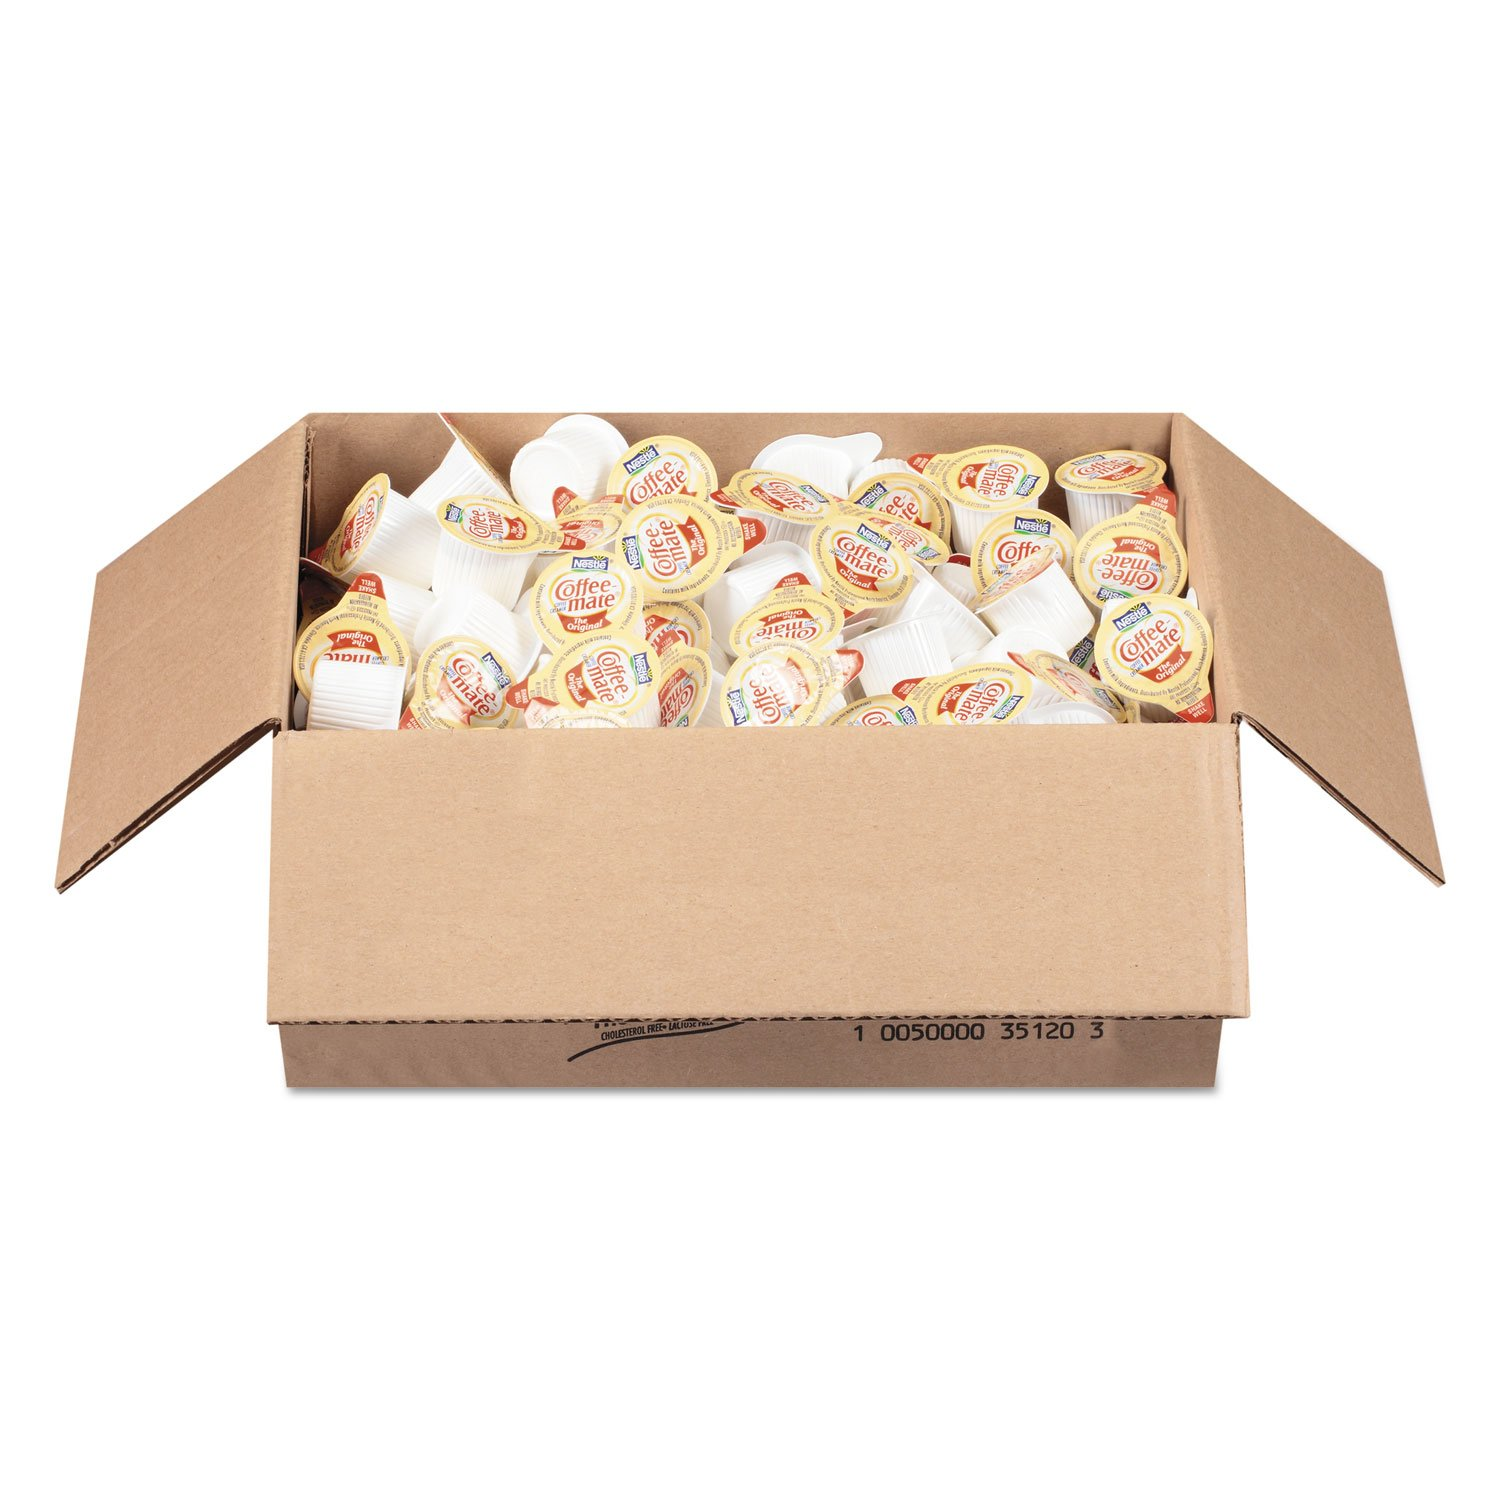 Coffee-mate 35010 Liquid Coffee Creamer, Original, 0.375 Oz Mini-Cups, 180/box, 2 Box/carton